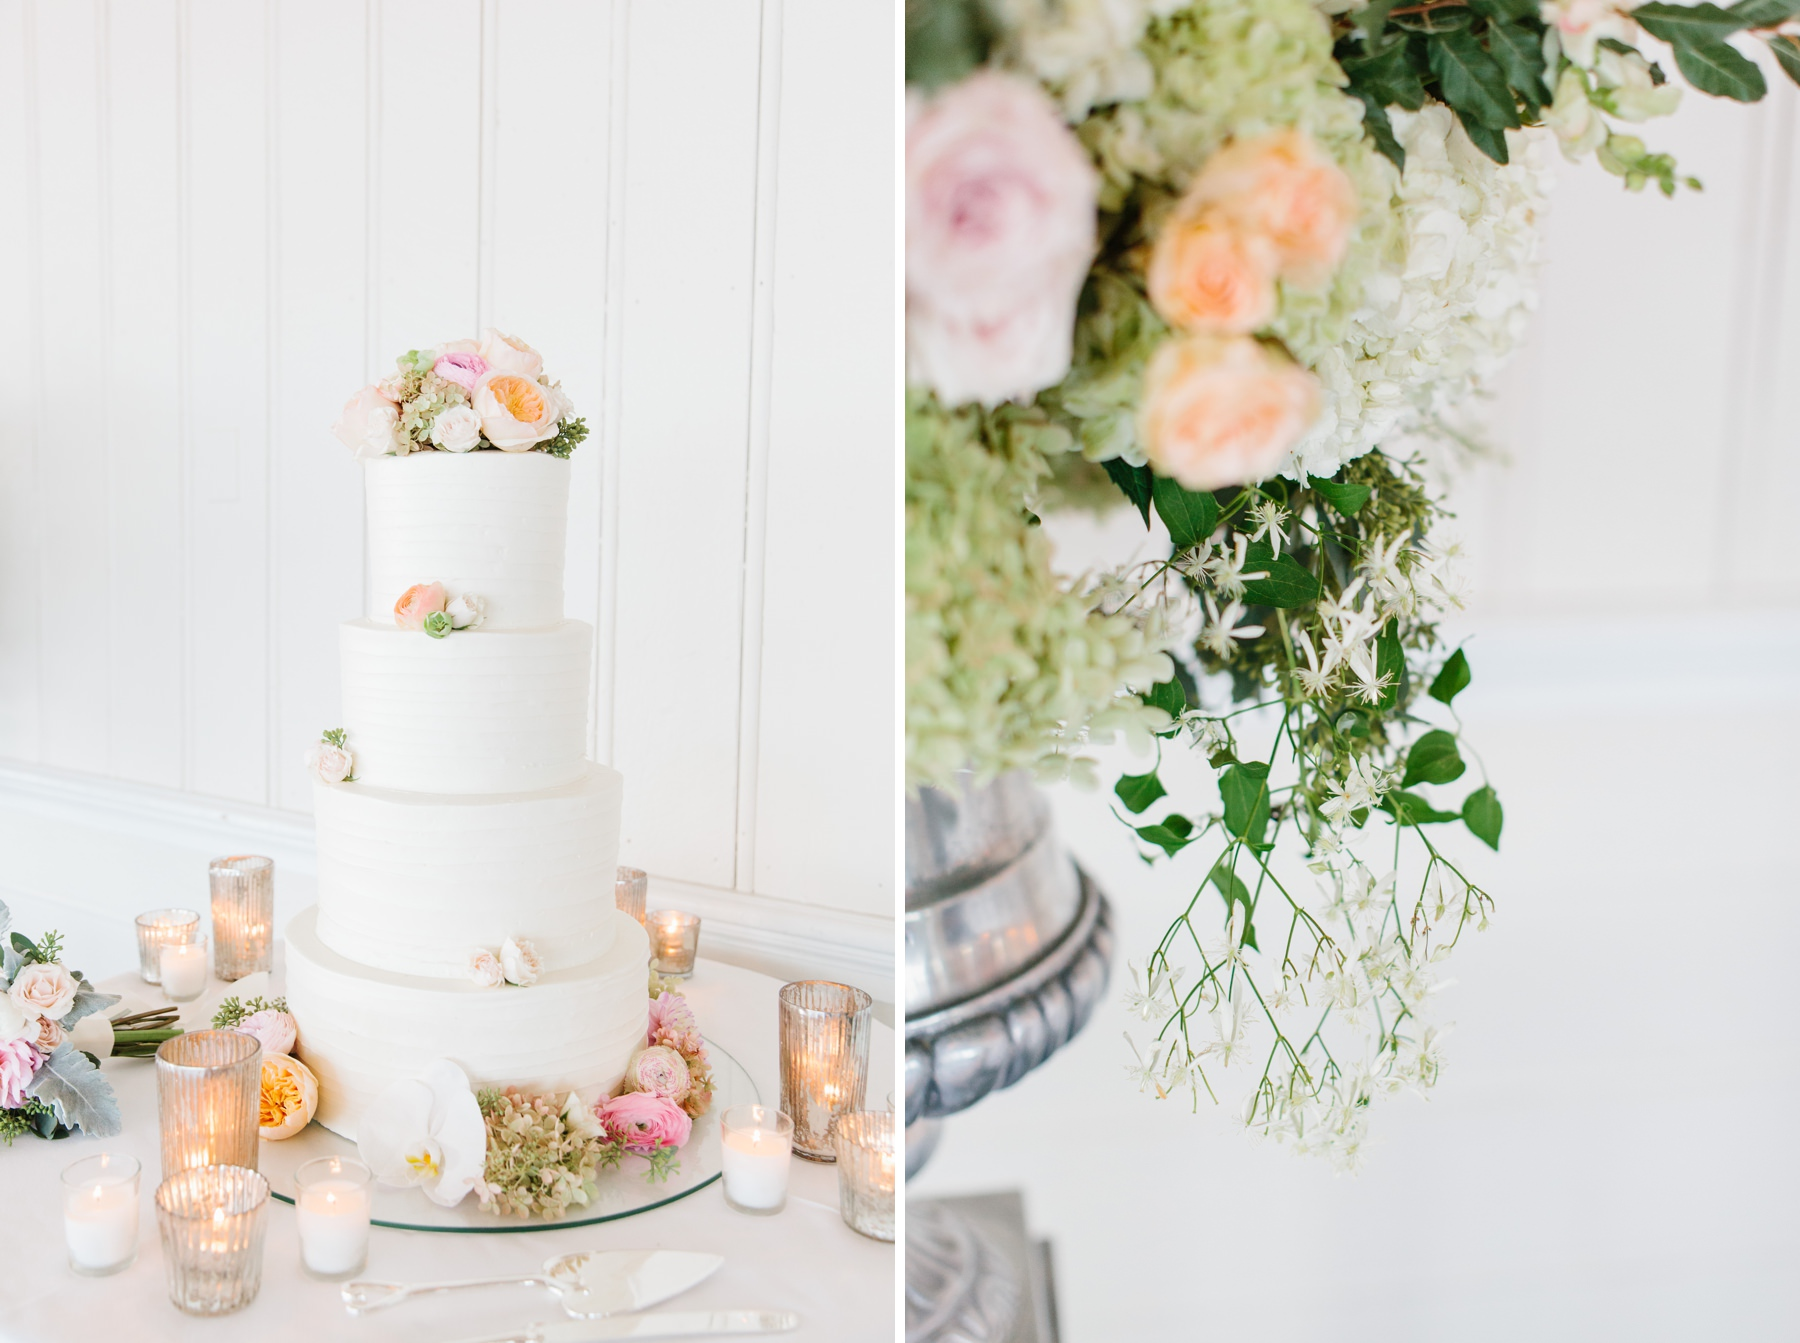 wedding cake with peach and pink flowers